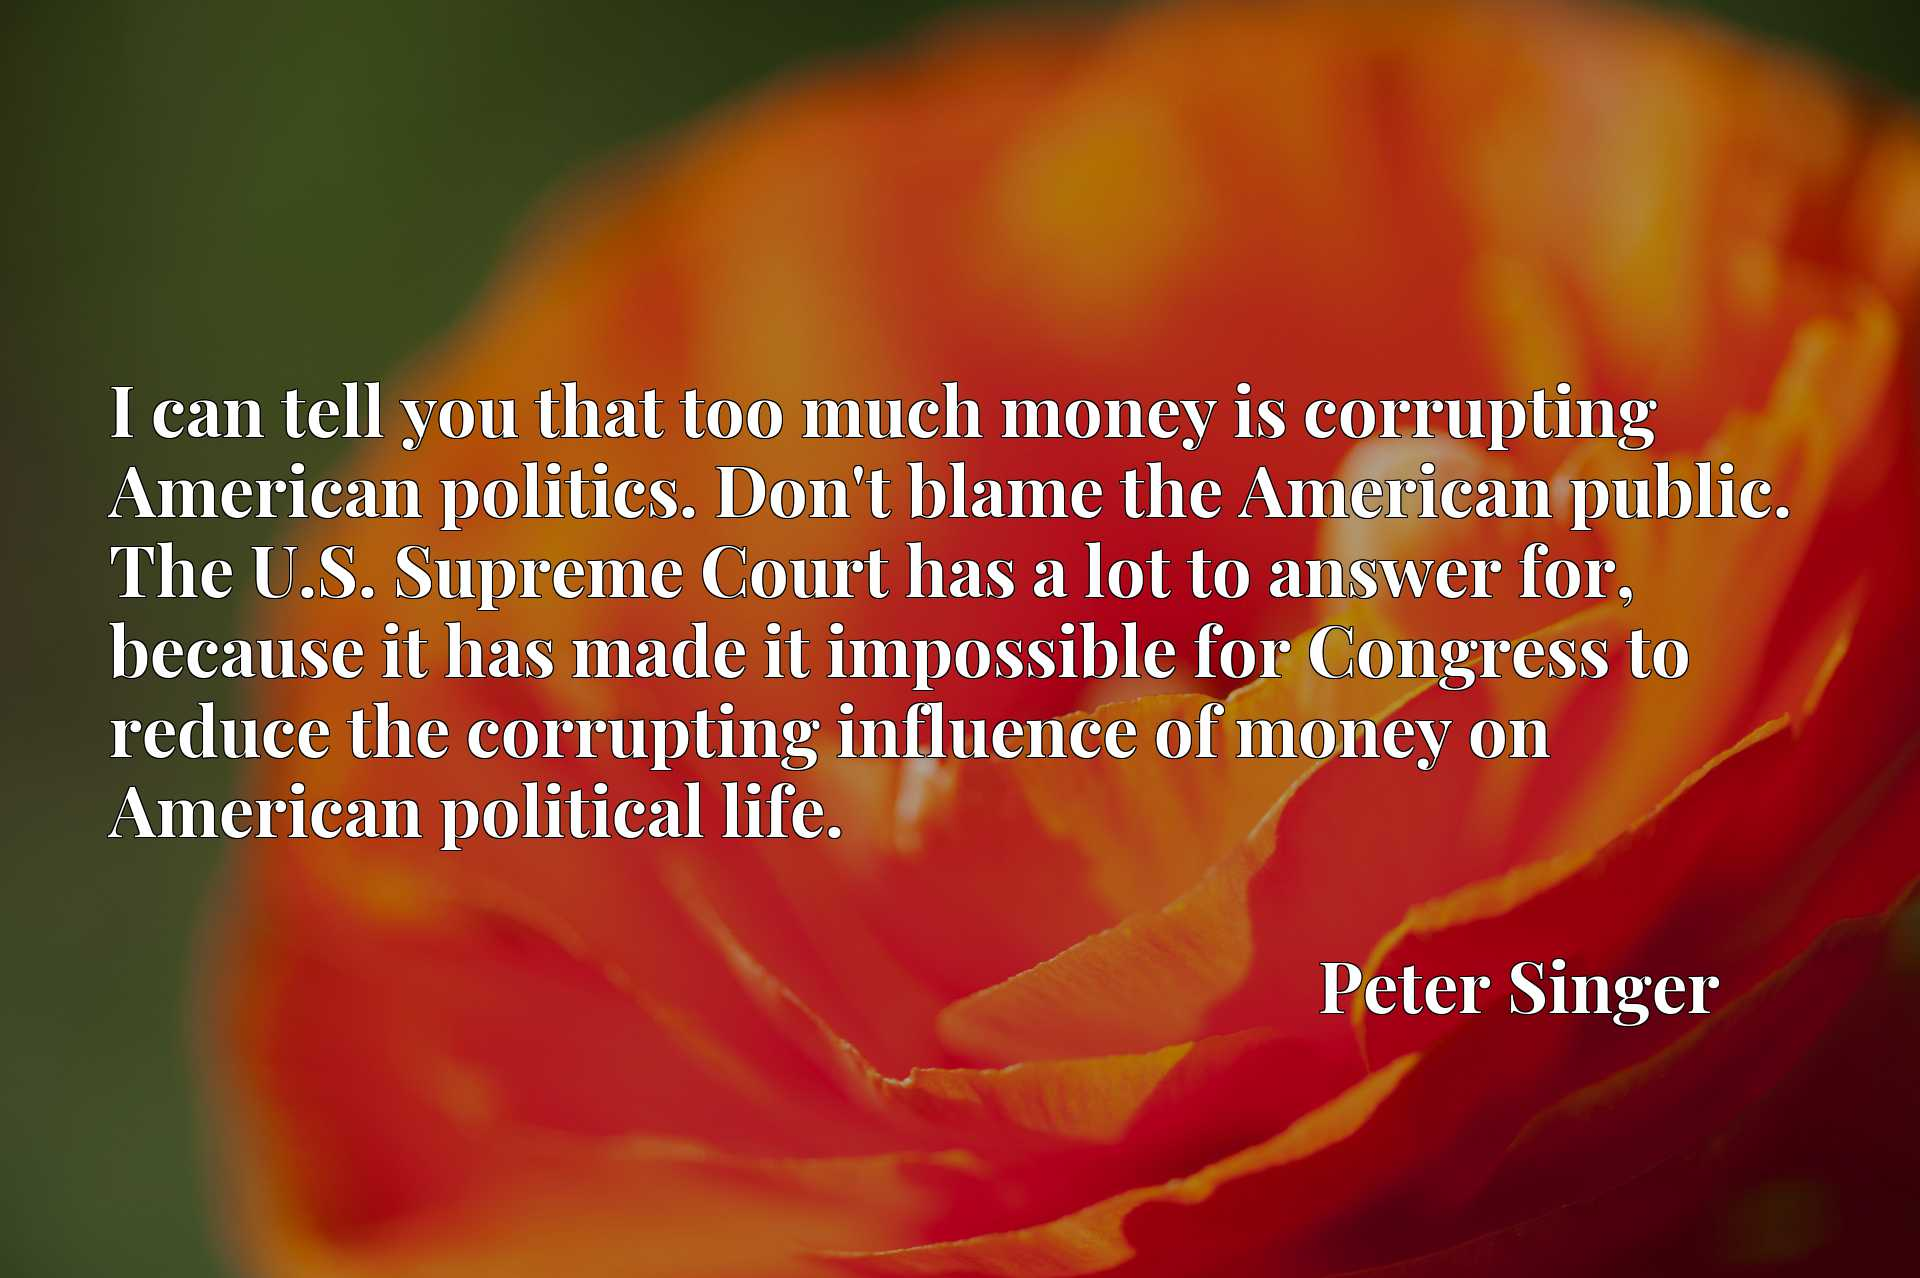 I can tell you that too much money is corrupting American politics. Don't blame the American public. The U.S. Supreme Court has a lot to answer for, because it has made it impossible for Congress to reduce the corrupting influence of money on American political life.